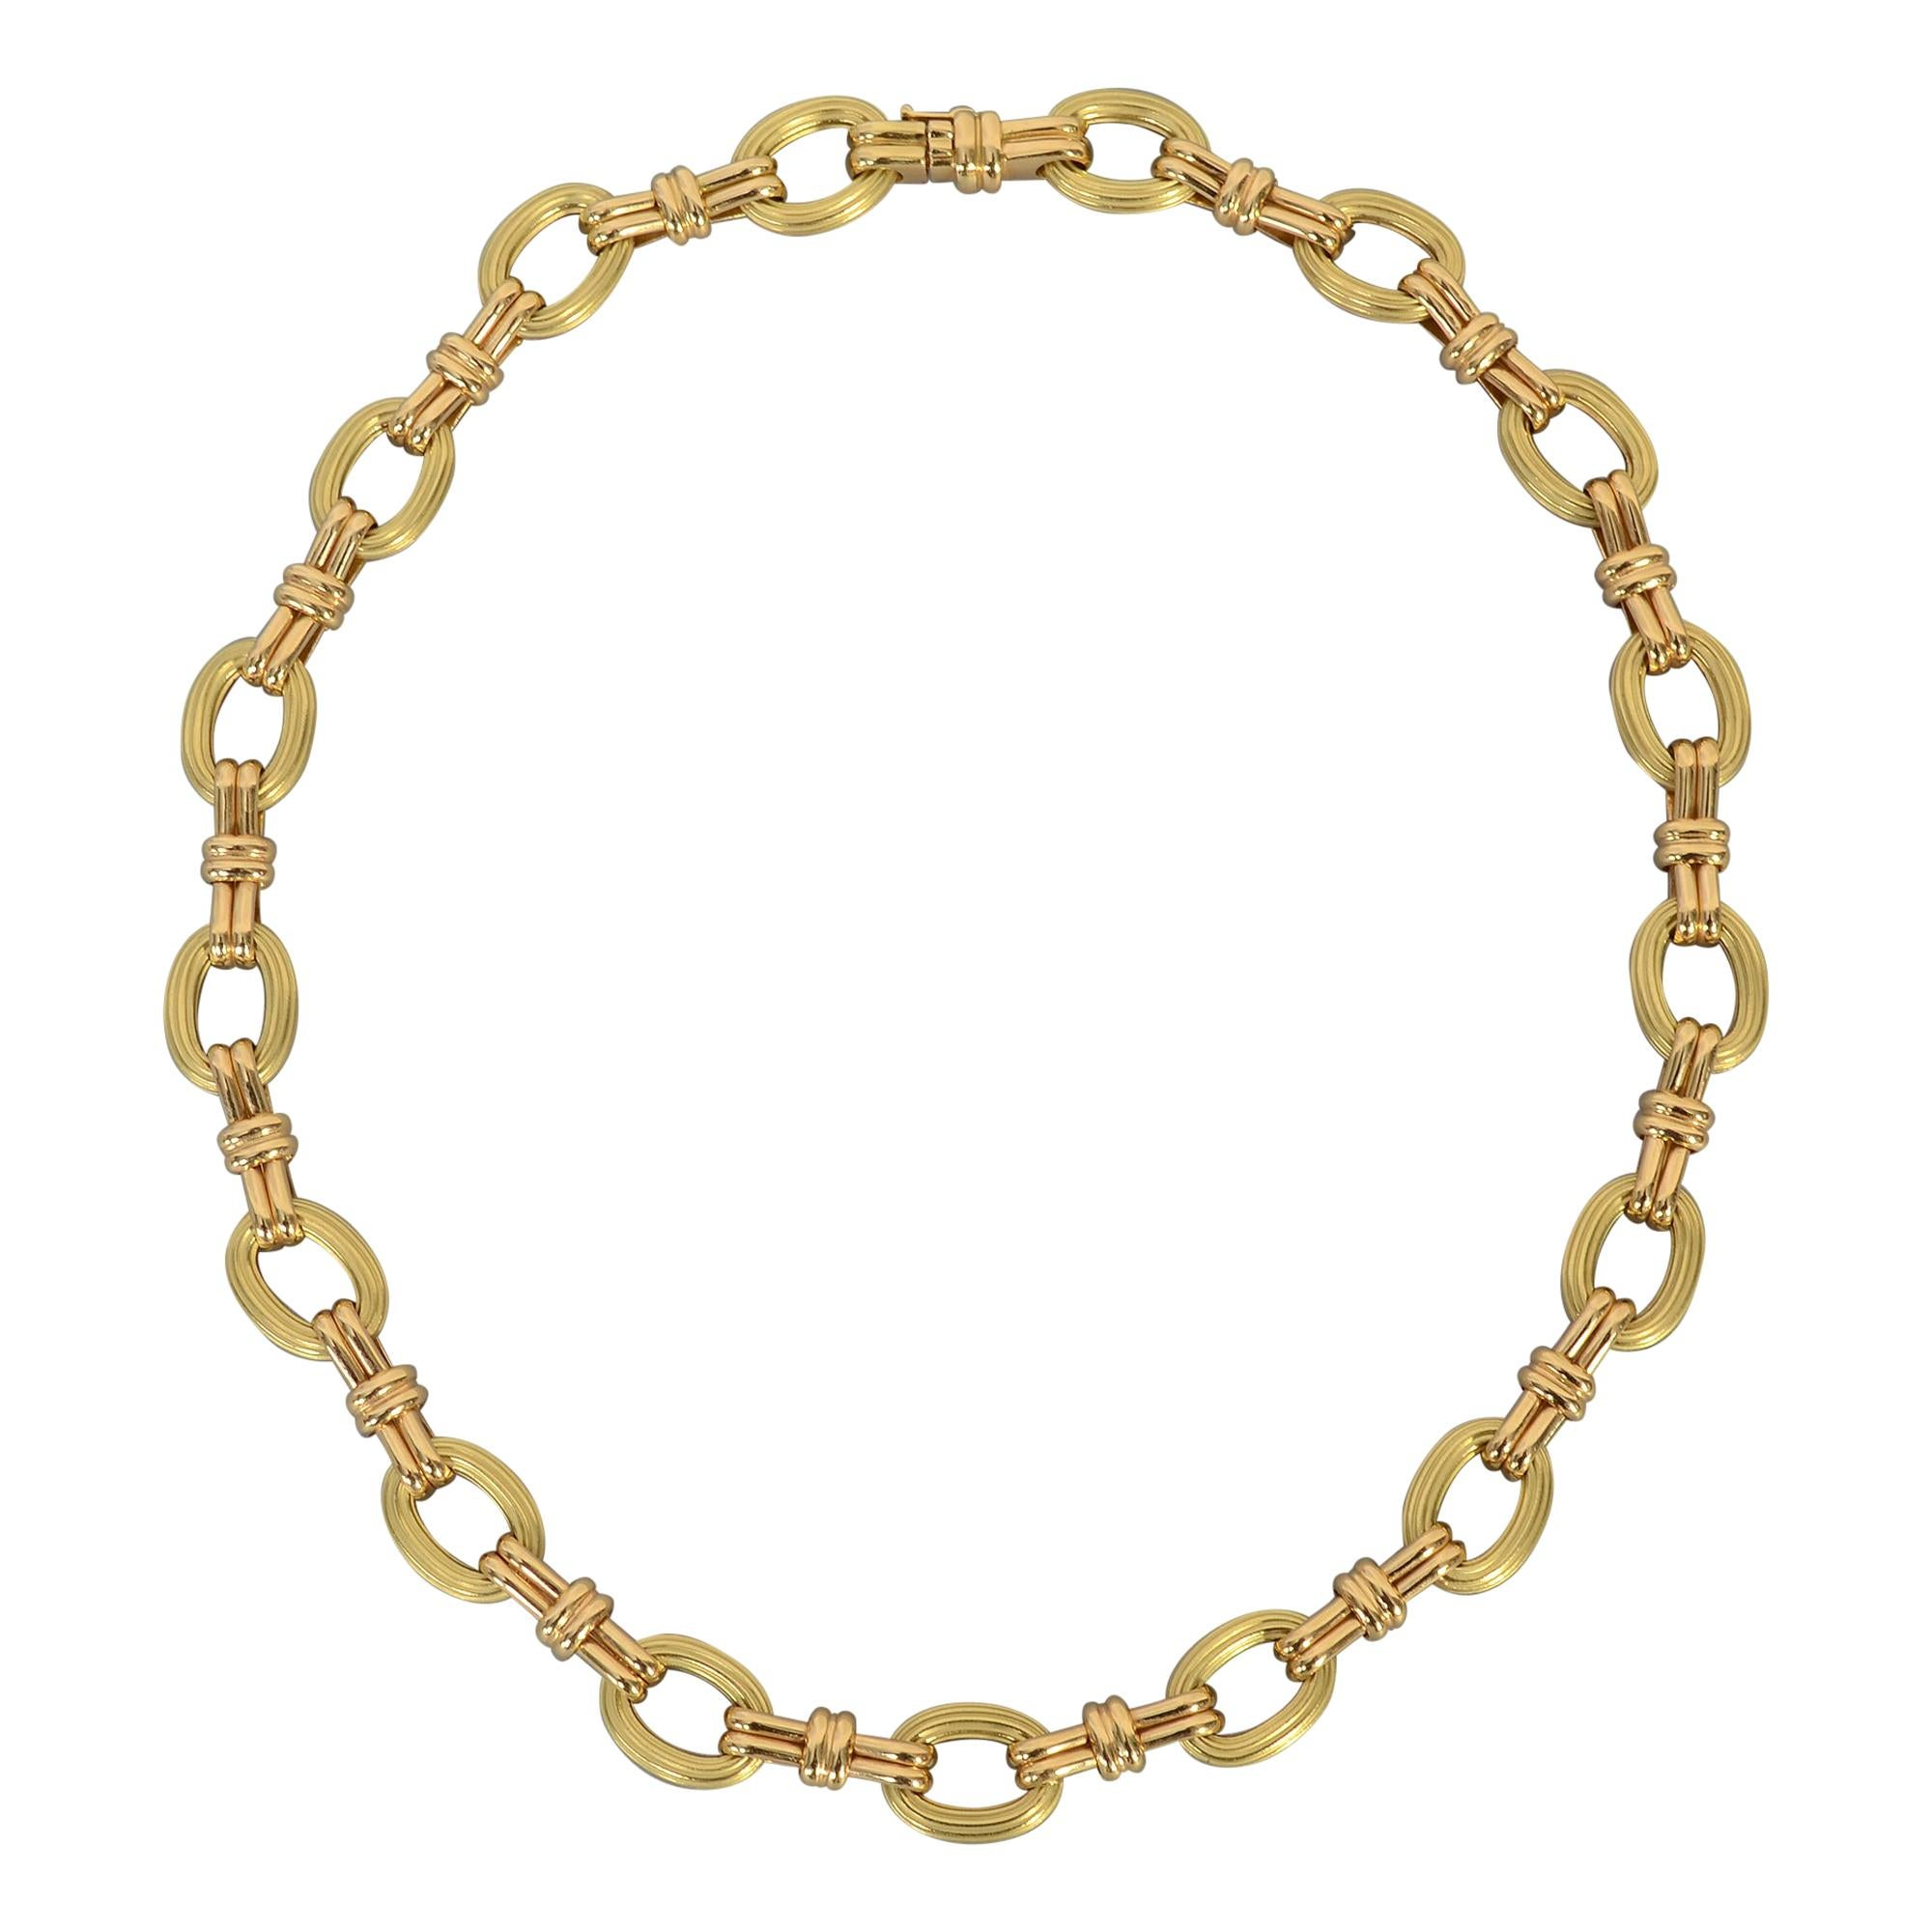 Chaumet Gold Oval Links Necklace